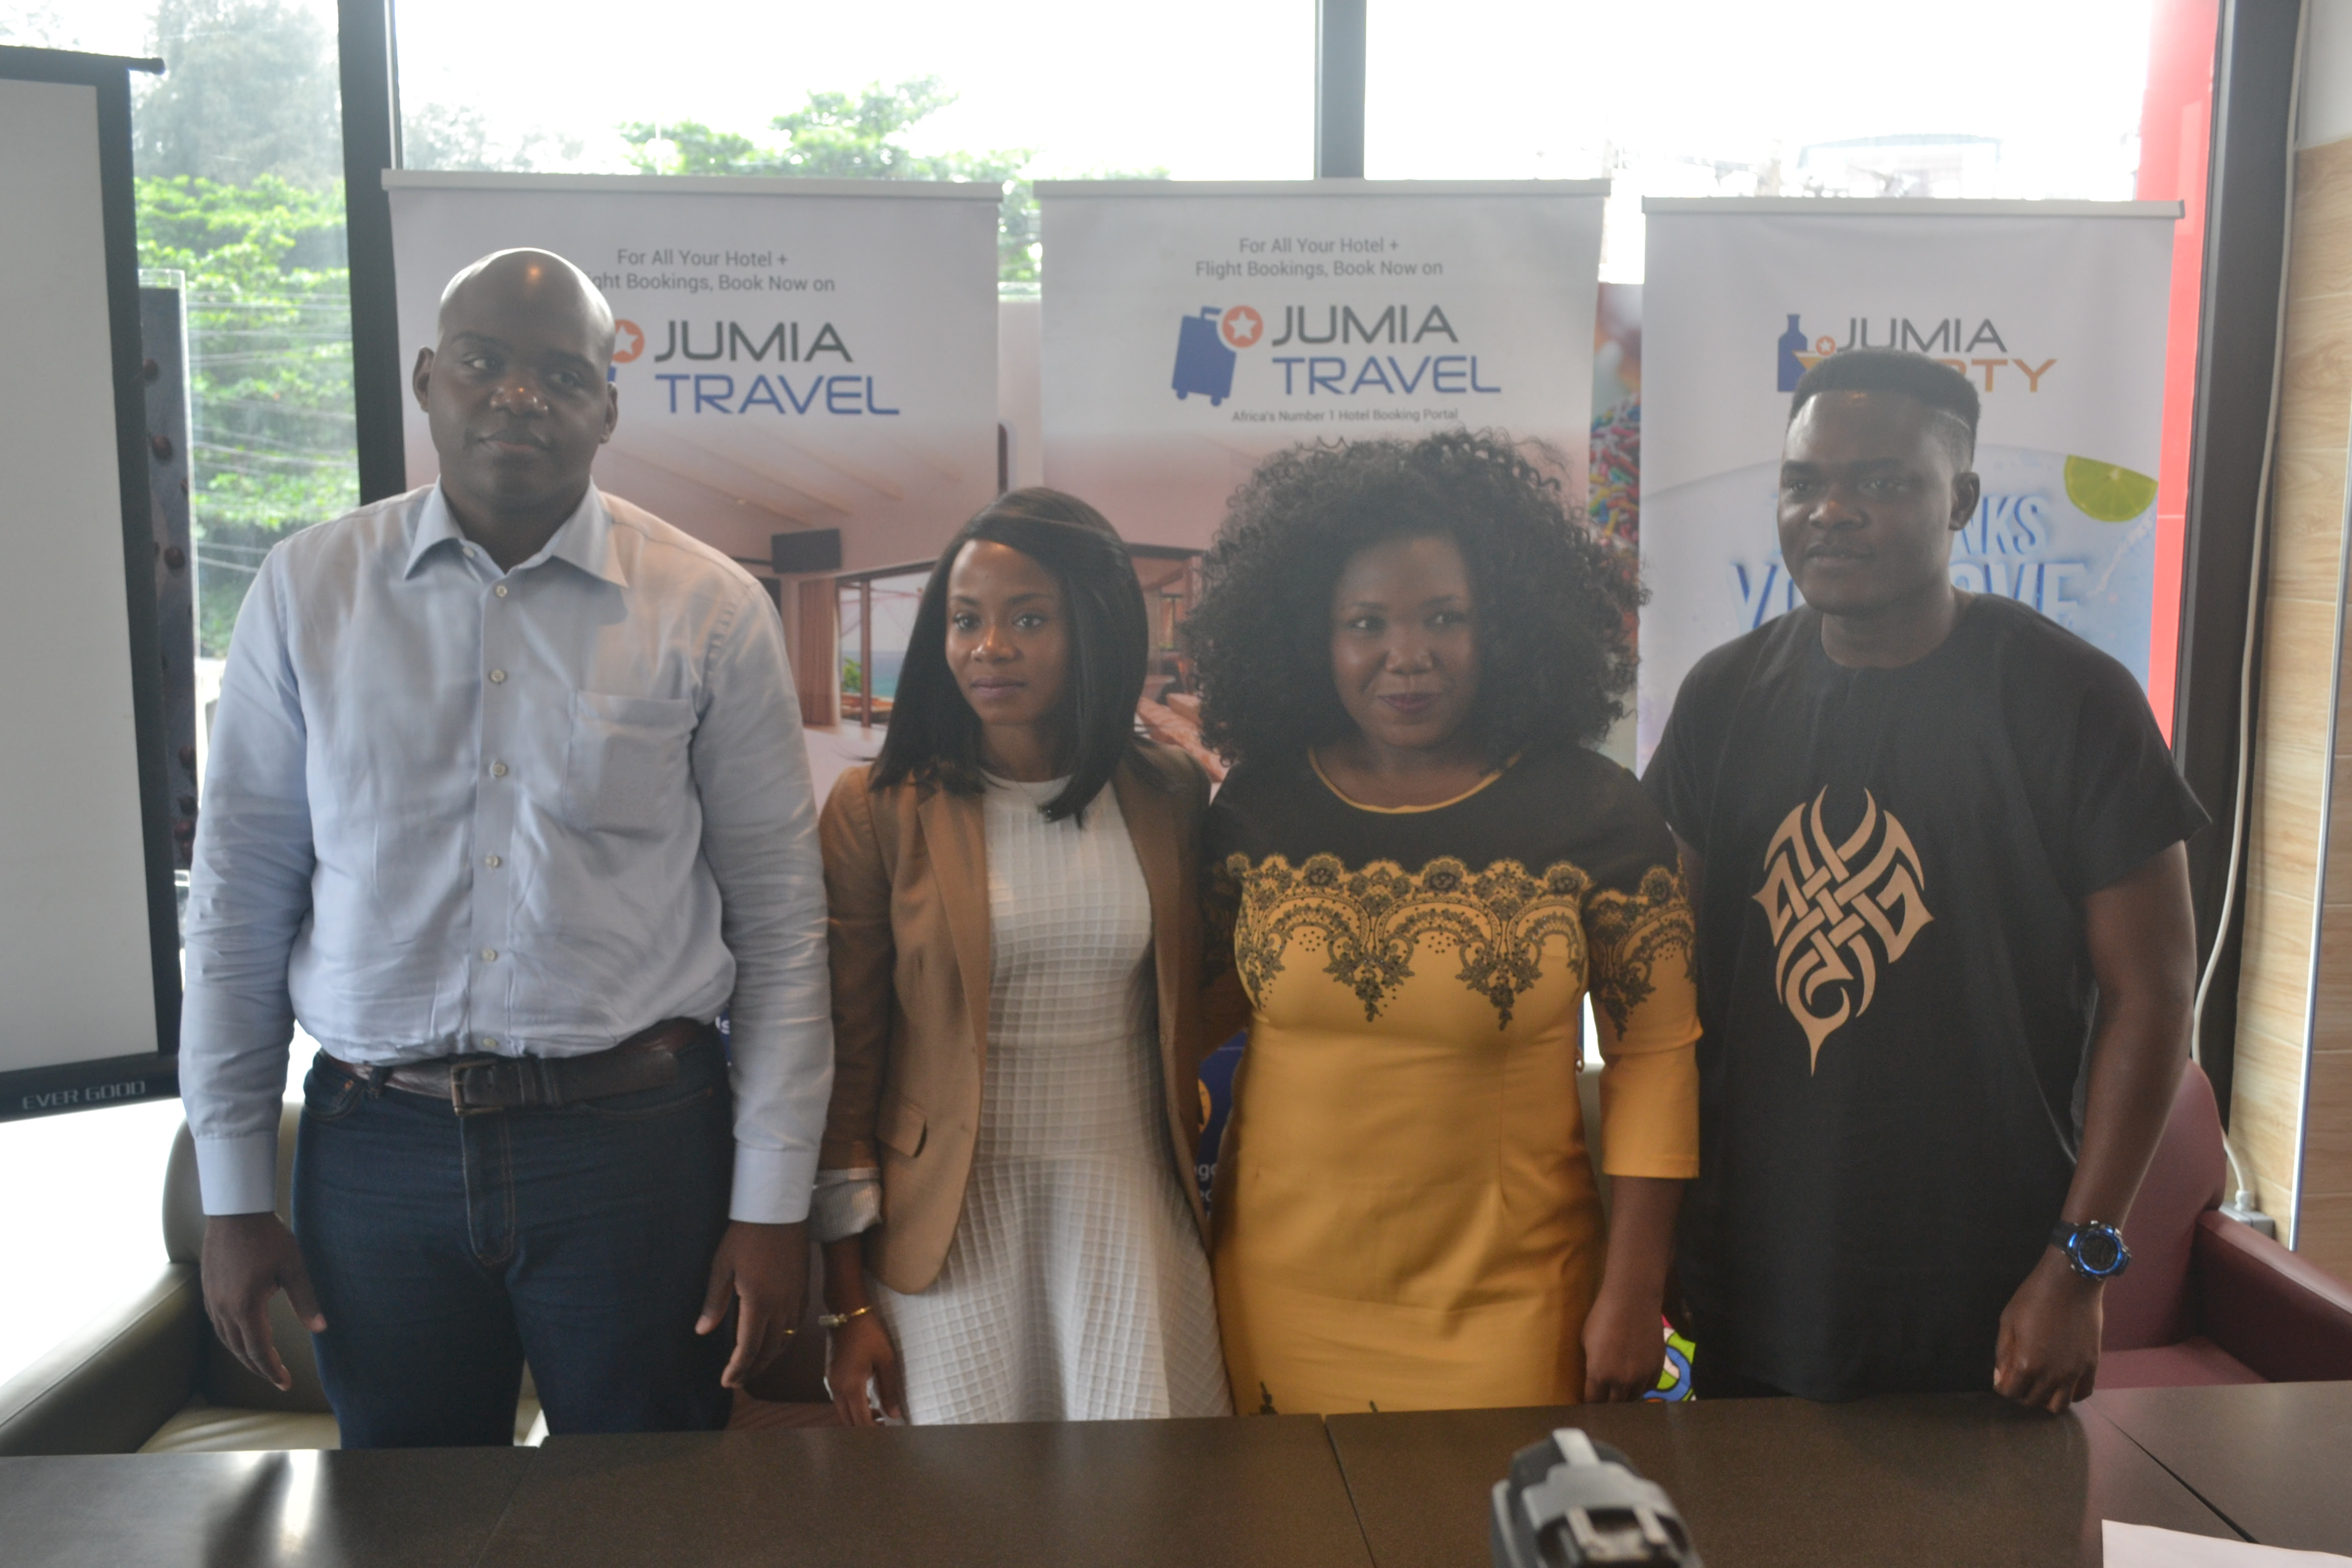 Jumia Launches Late-night Food Delivery Service